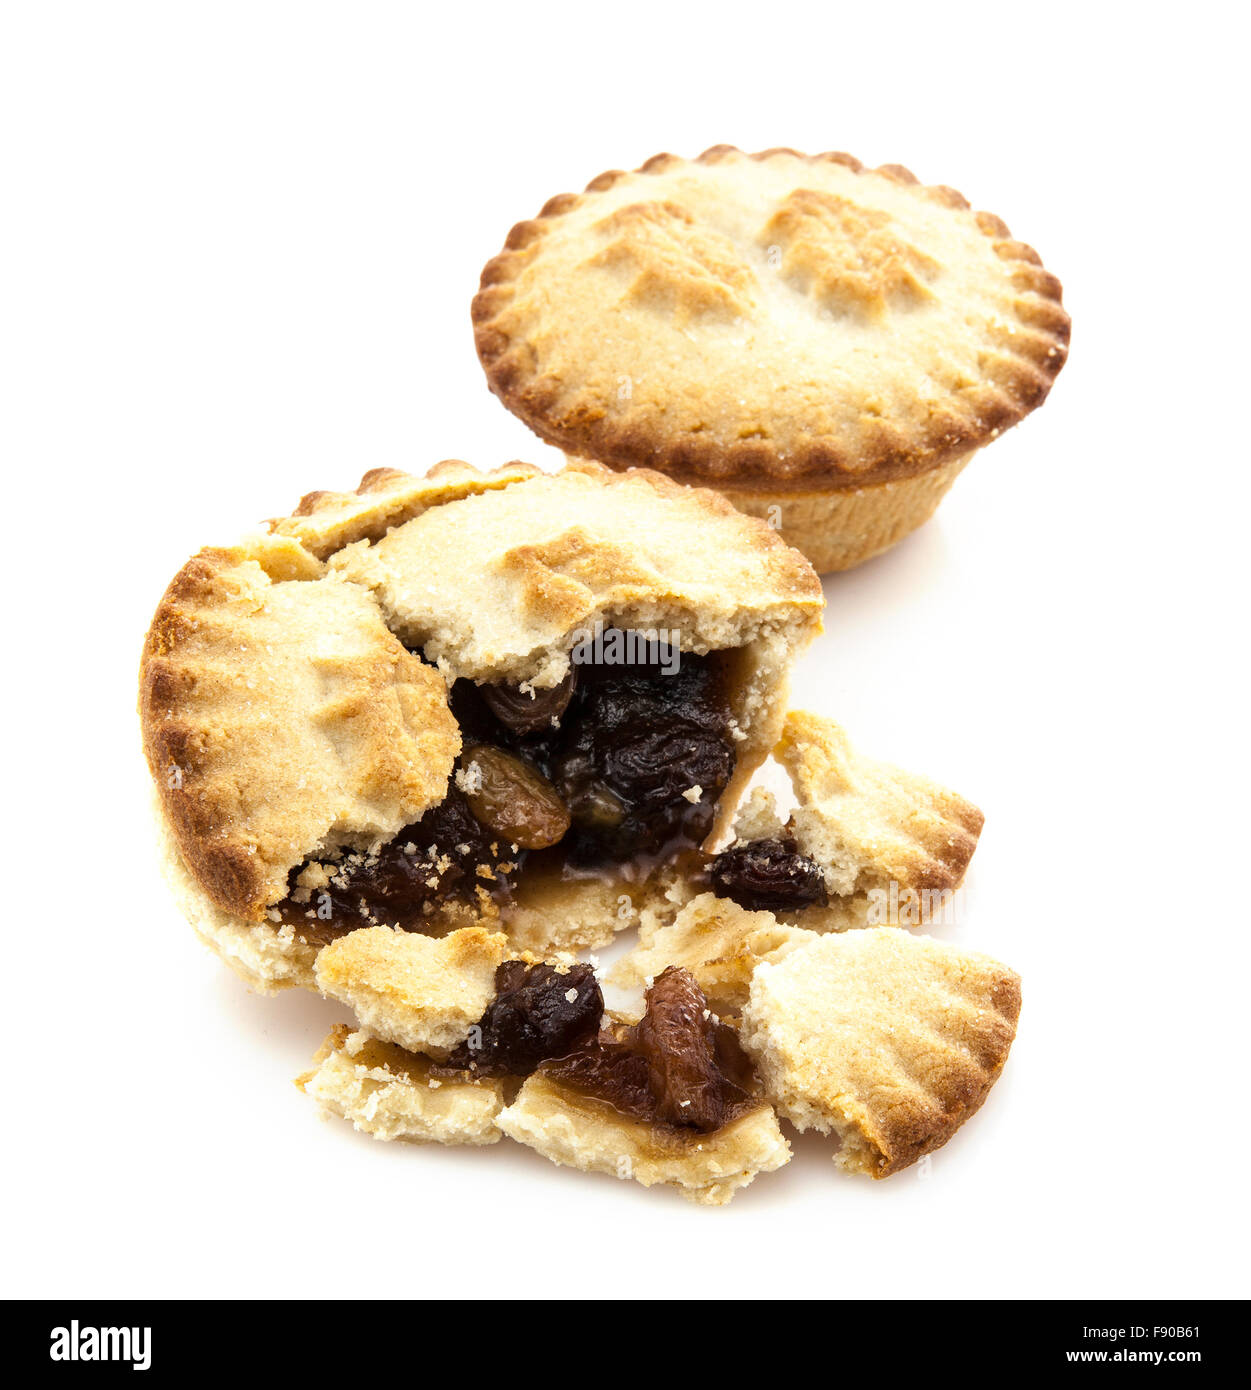 Mince Pie broken in half showing mince on white background - Stock Image